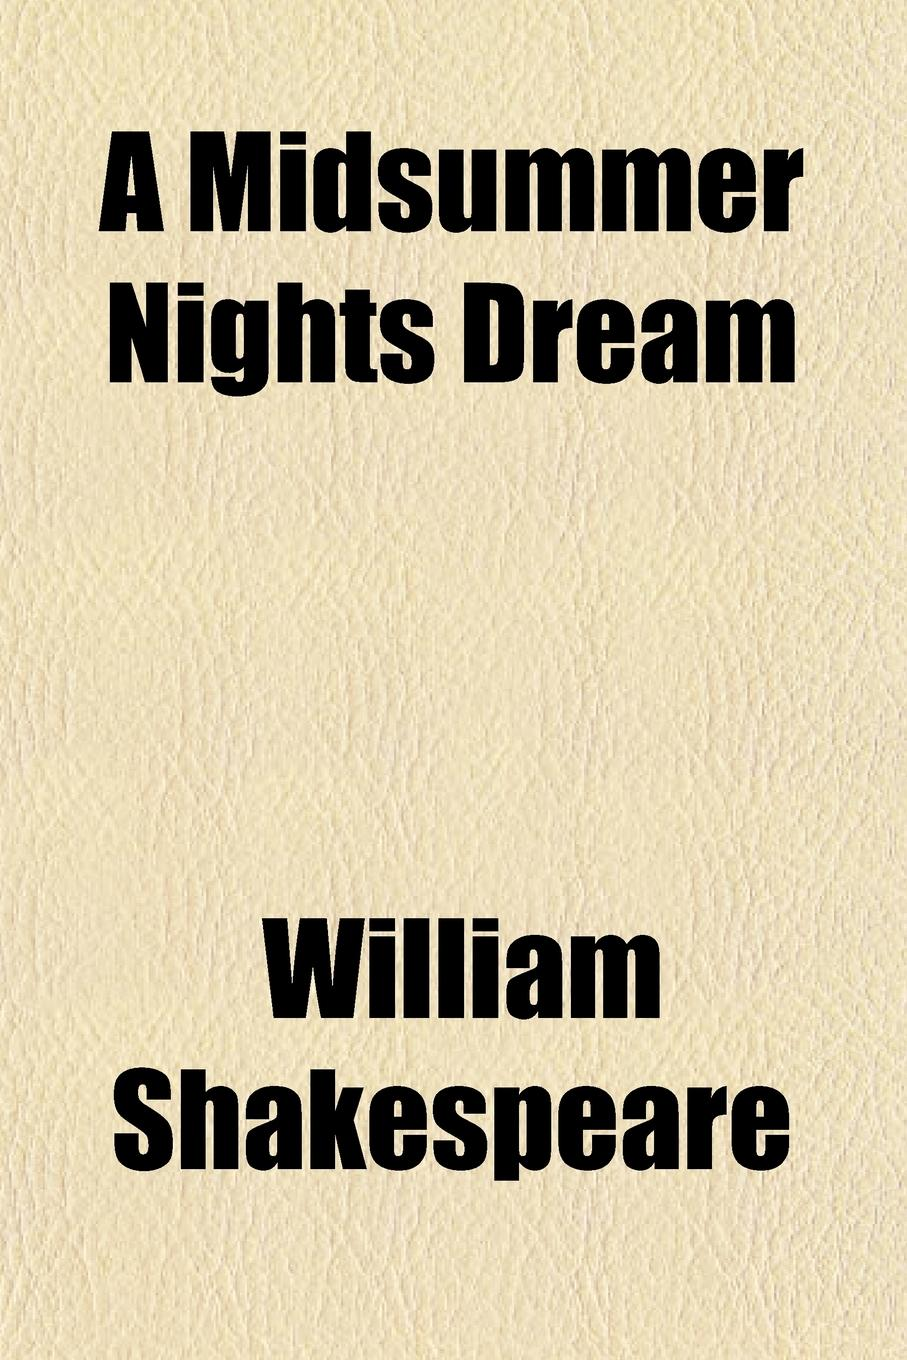 William Shakespeare A Midsummer Nights Dream free shipping kayipht cm400ha1 24h can directly buy or contact the seller